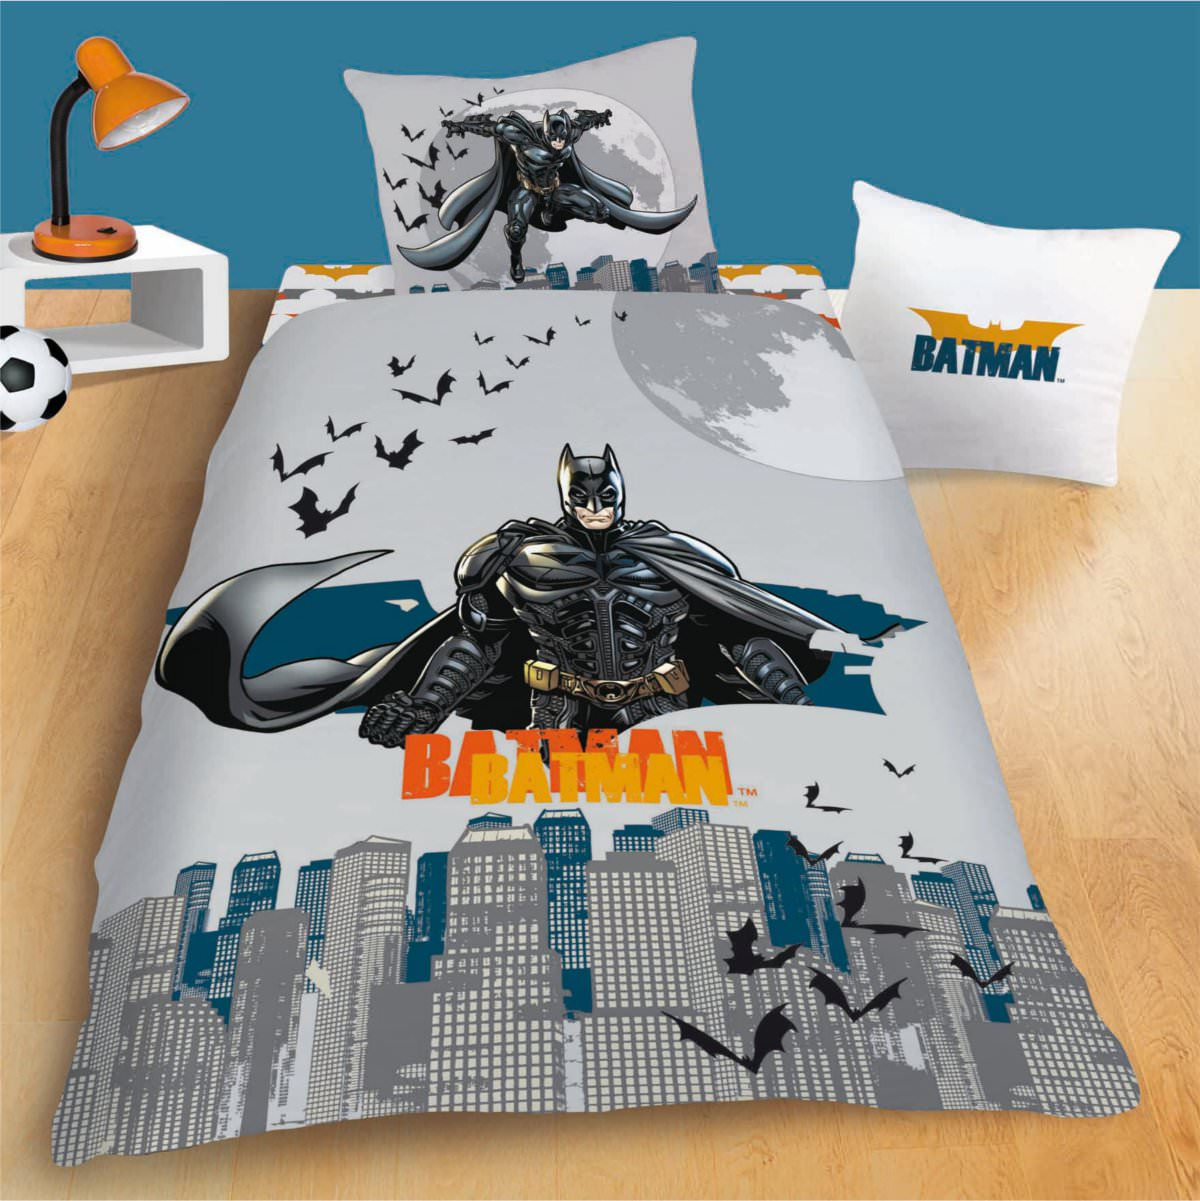 superior housse de couette batman 4 parure de lit batman shadow housse de couette taie. Black Bedroom Furniture Sets. Home Design Ideas